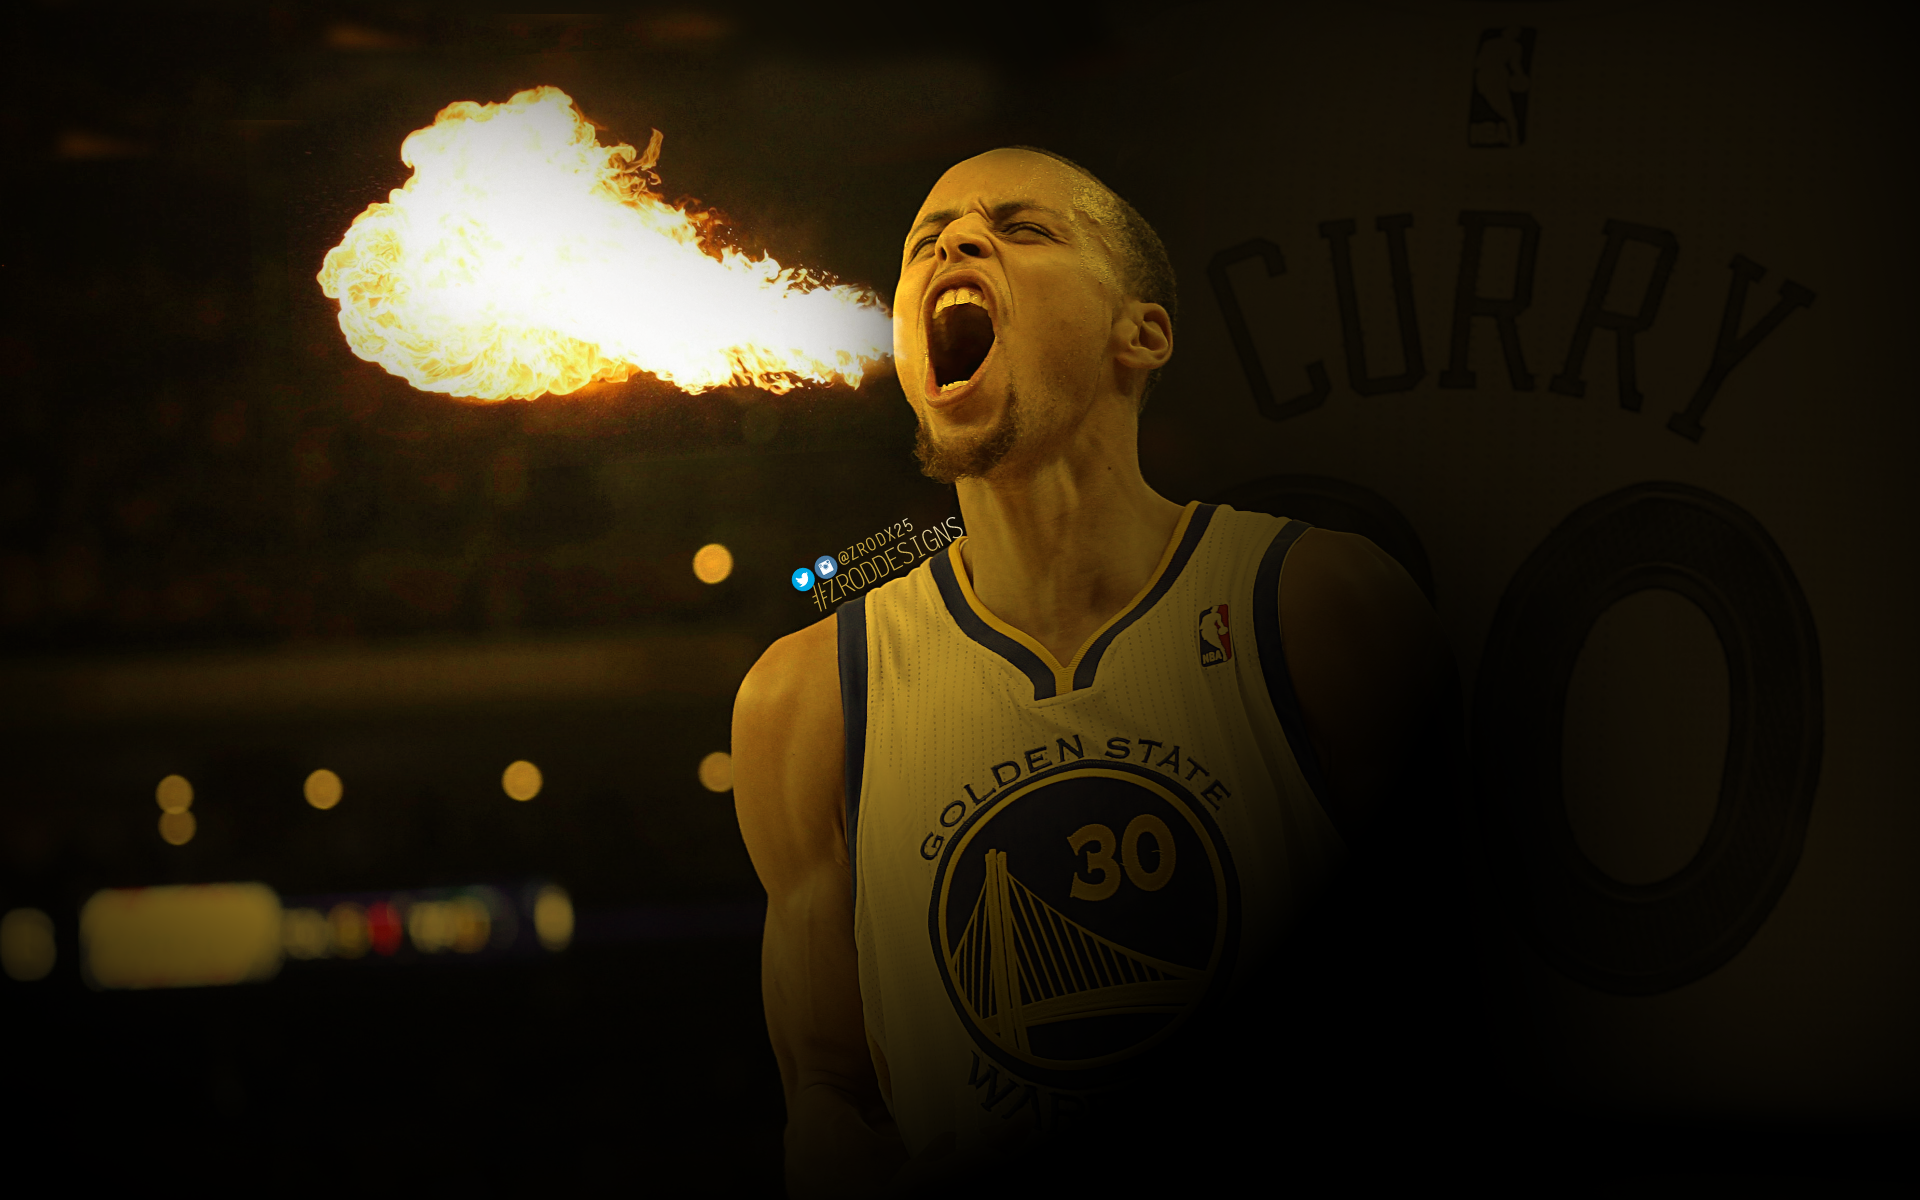 1920x1200 Stephen Curry Fire by zroddesigns 1